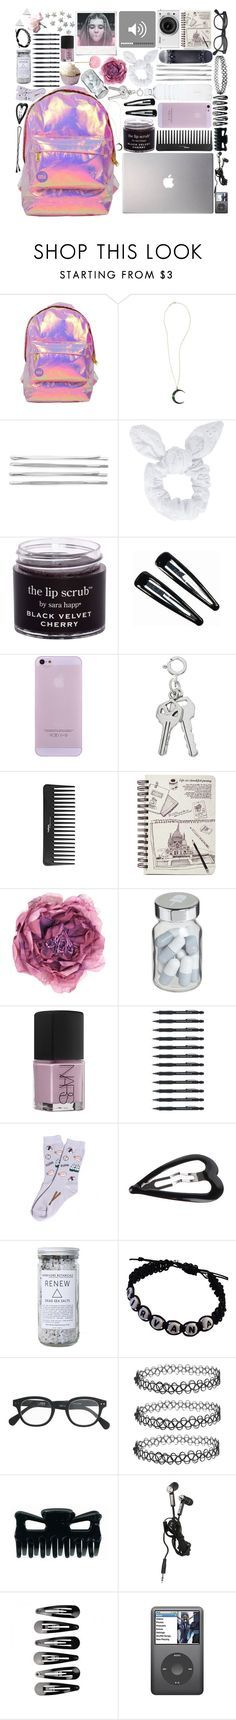 """What Is In My Backpack"" by marie-anderson-i ❤ liked on Polyvore featuring Miss Selfridge, Andrea Fohrman, Cara, Topshop, Polaroid, Clips, Samsung, Sephora Collection, Nikon and Gucci"